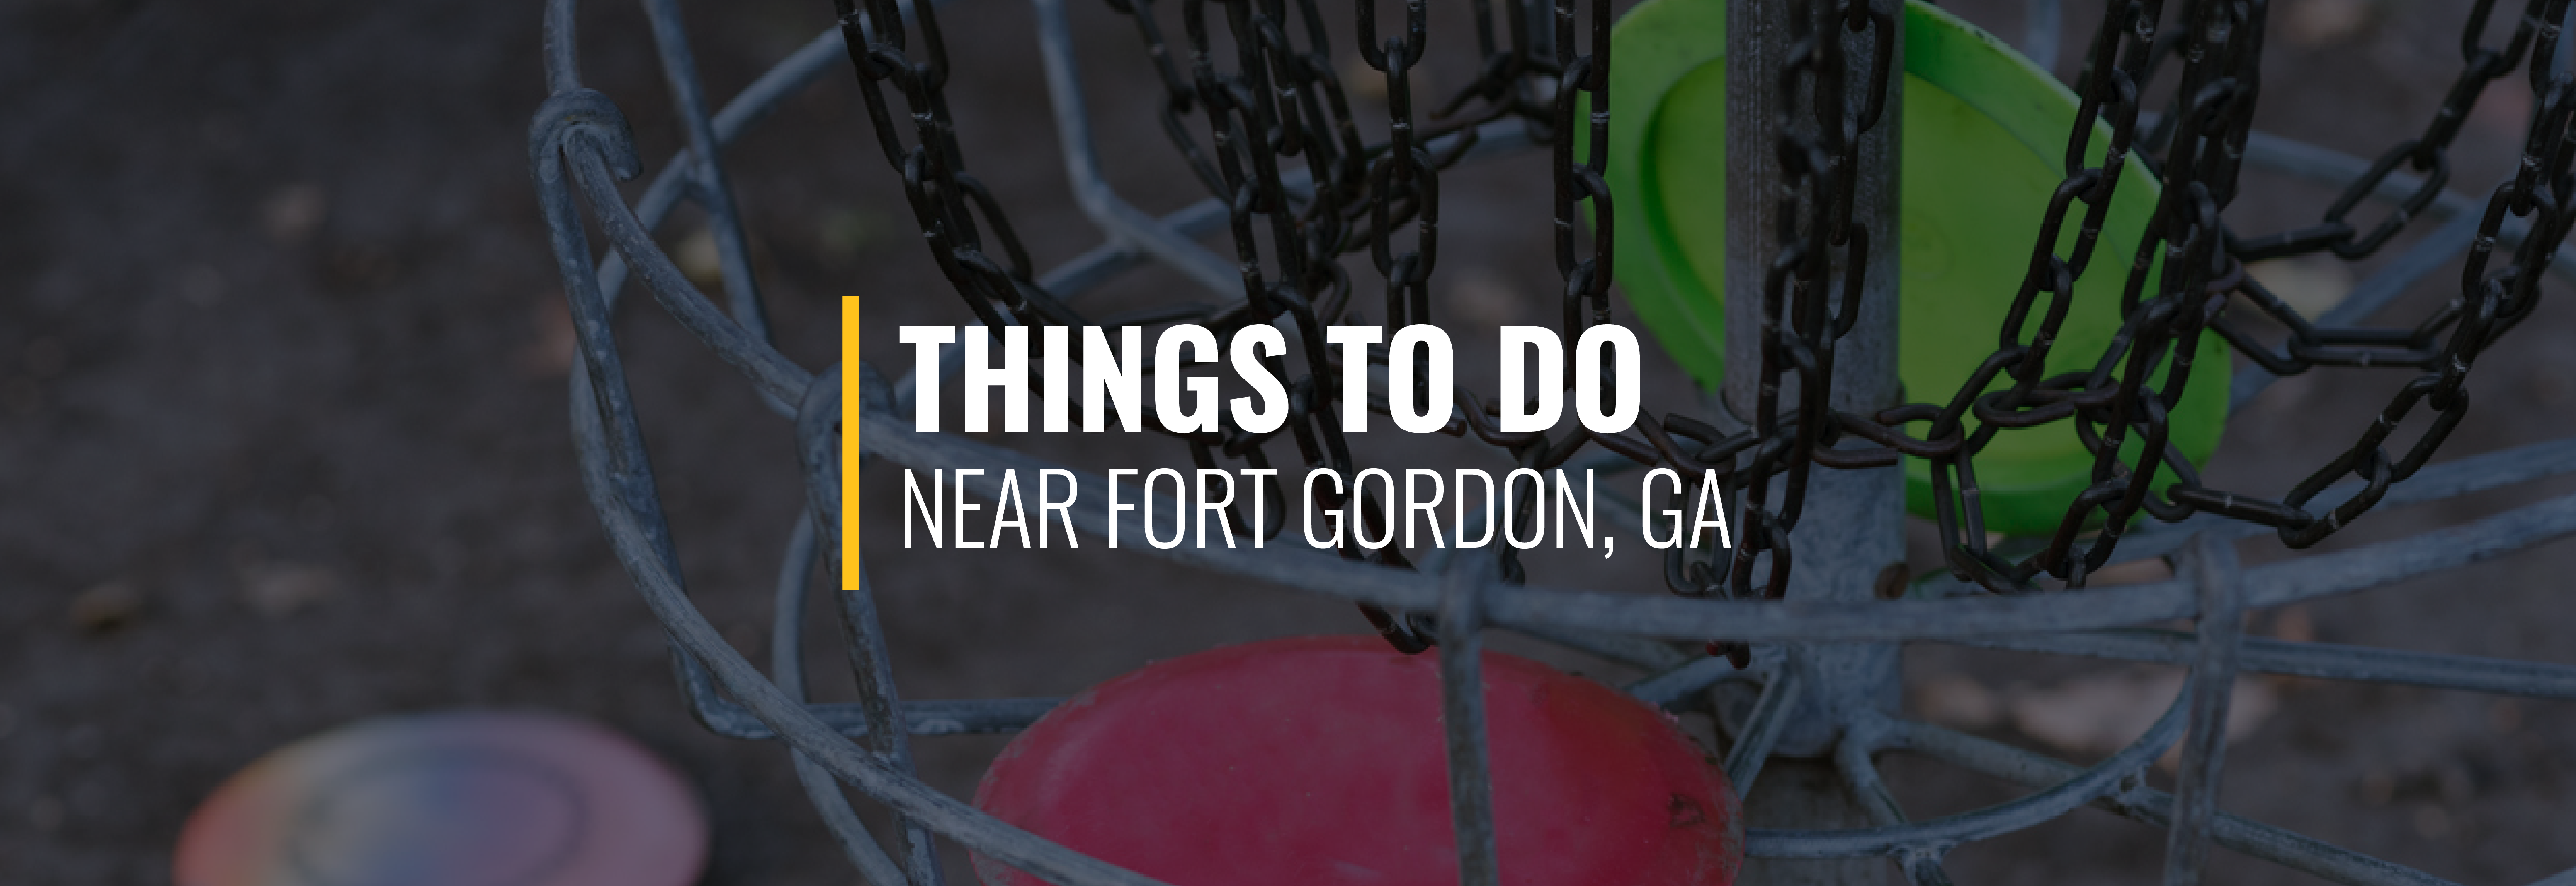 Things to Do At Fort Gordon